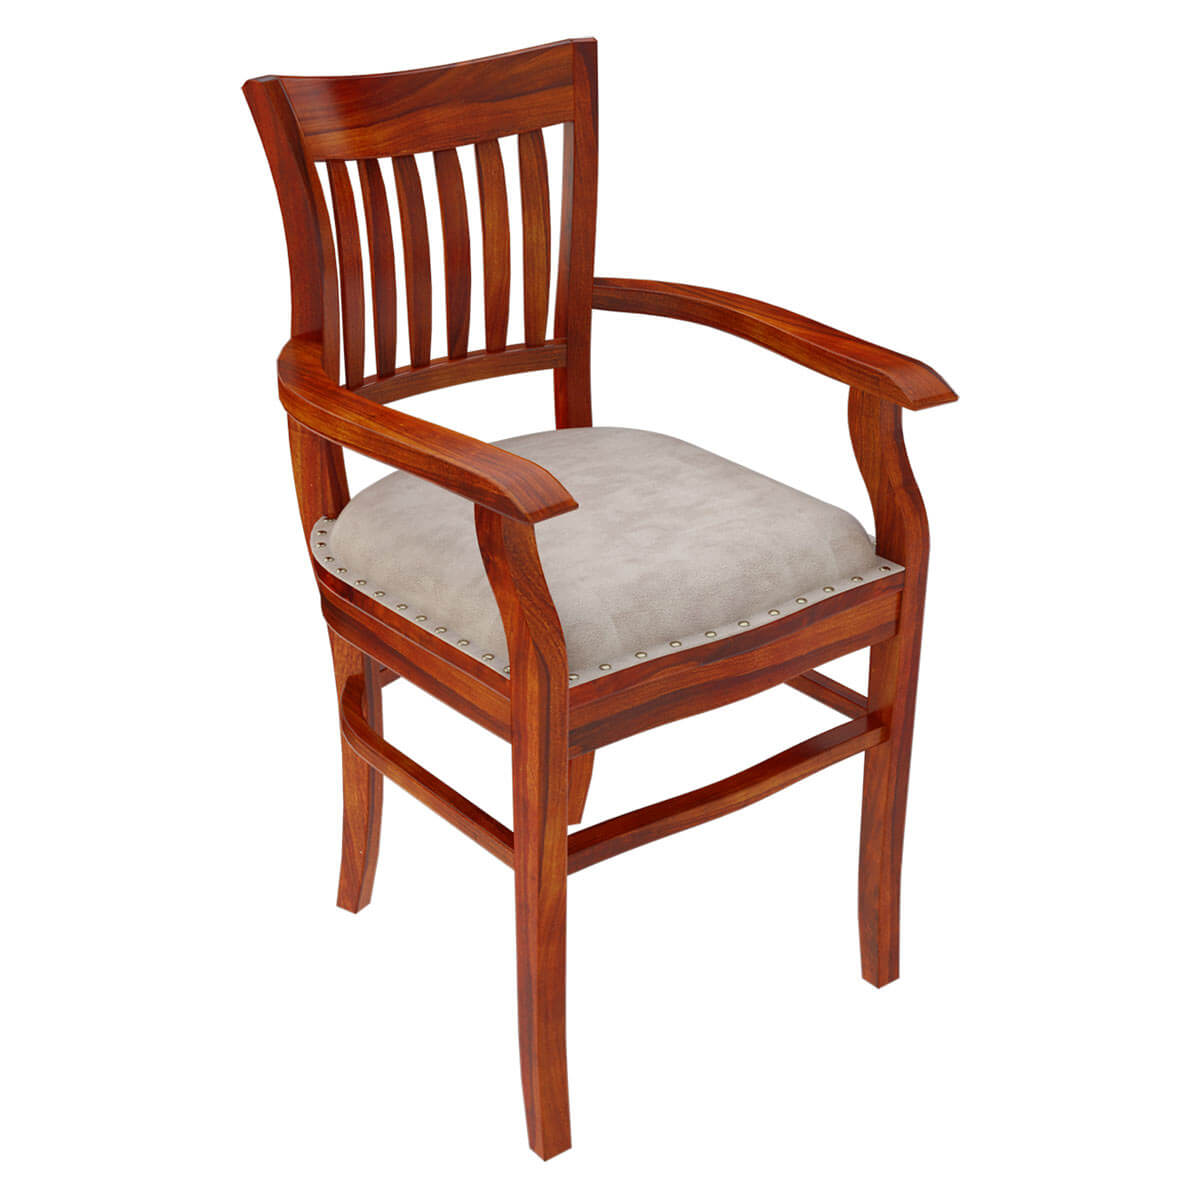 Solid Wood Arm Chair Leather Cushion Dining Furniture : 54452 from www.sierralivingconcepts.com size 1200 x 1200 jpeg 80kB